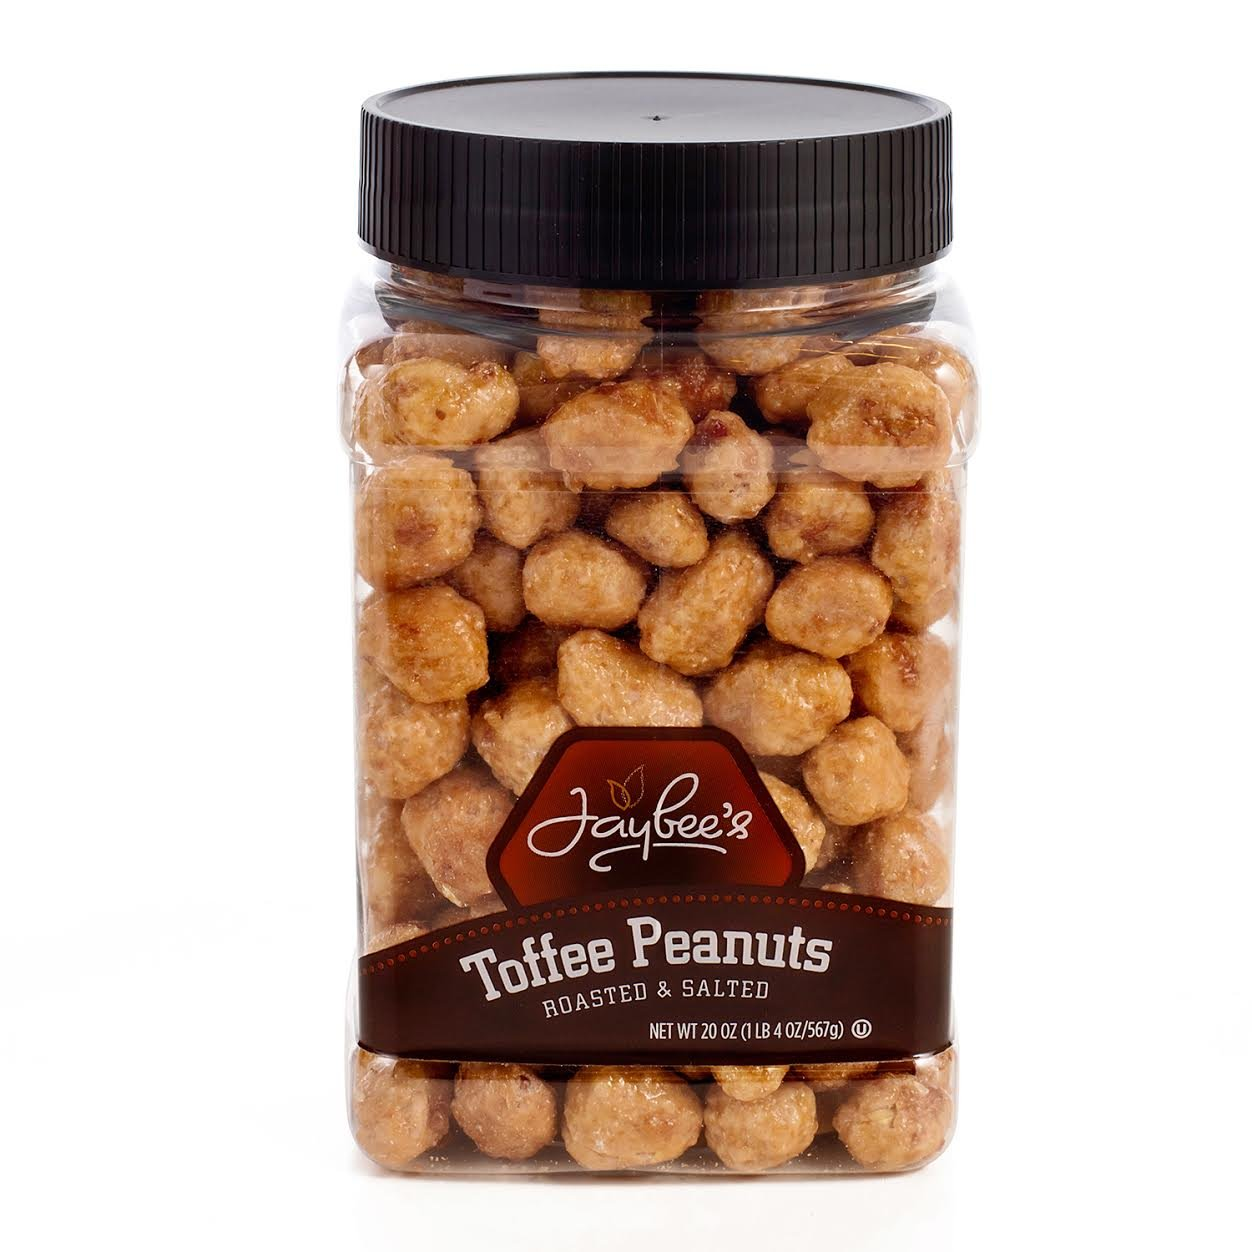 Jaybee's Tasty Toffee Peanuts - Great for Holiday Gift Giving or As Everyday Snack - Reusable Container - Certified Kosher Perfect Nuts (20 Ounces)